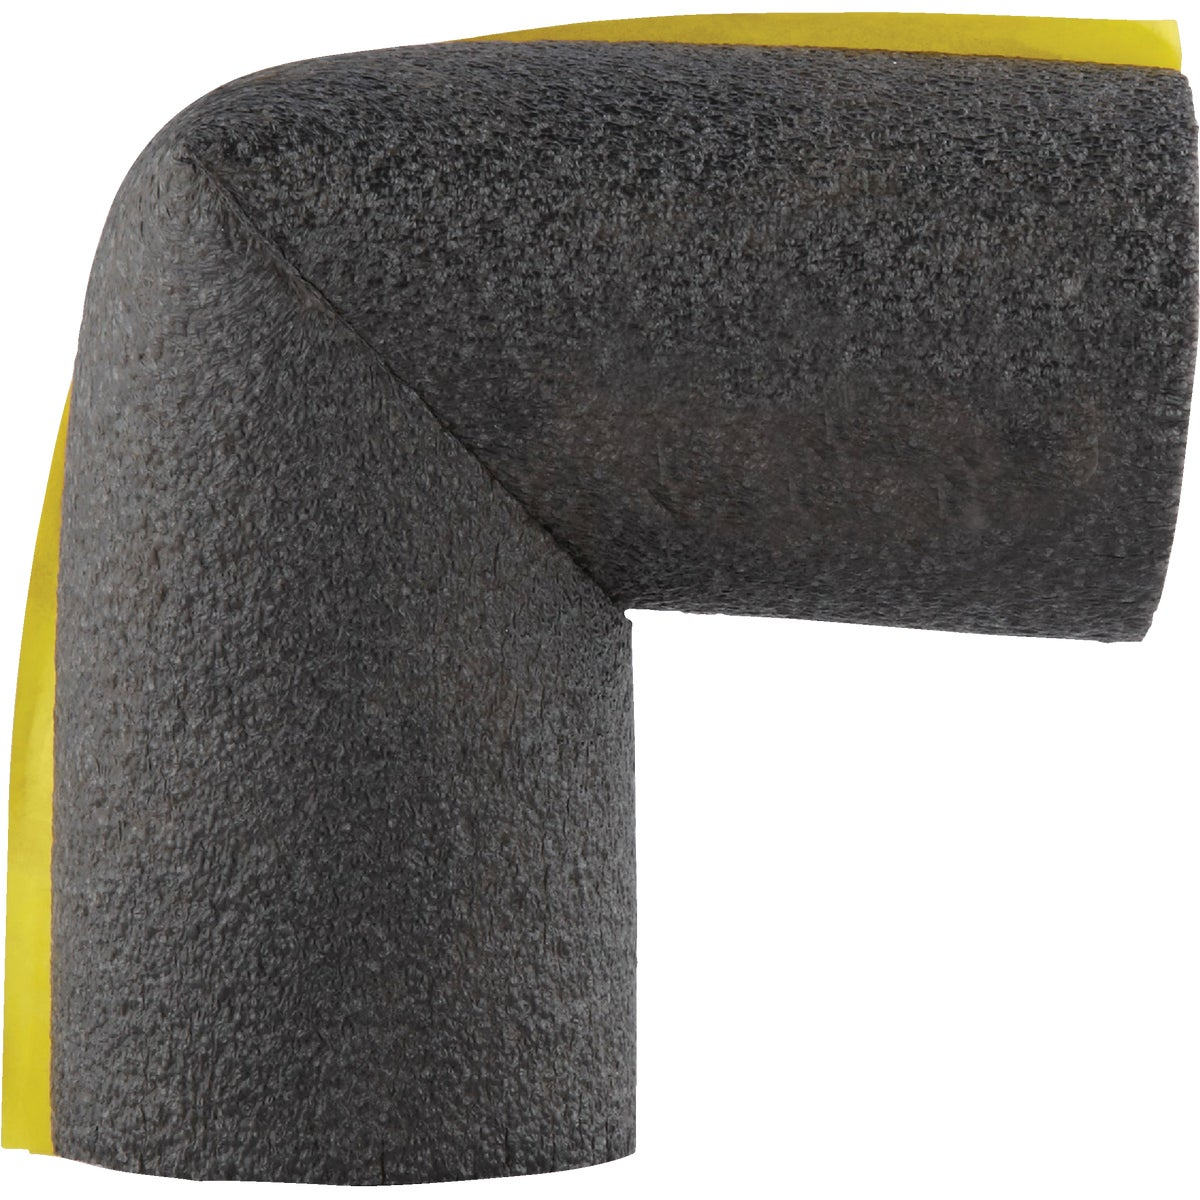 "3/4"" ELBOW INSULATION - PF38078T2 by I T P Ltd"